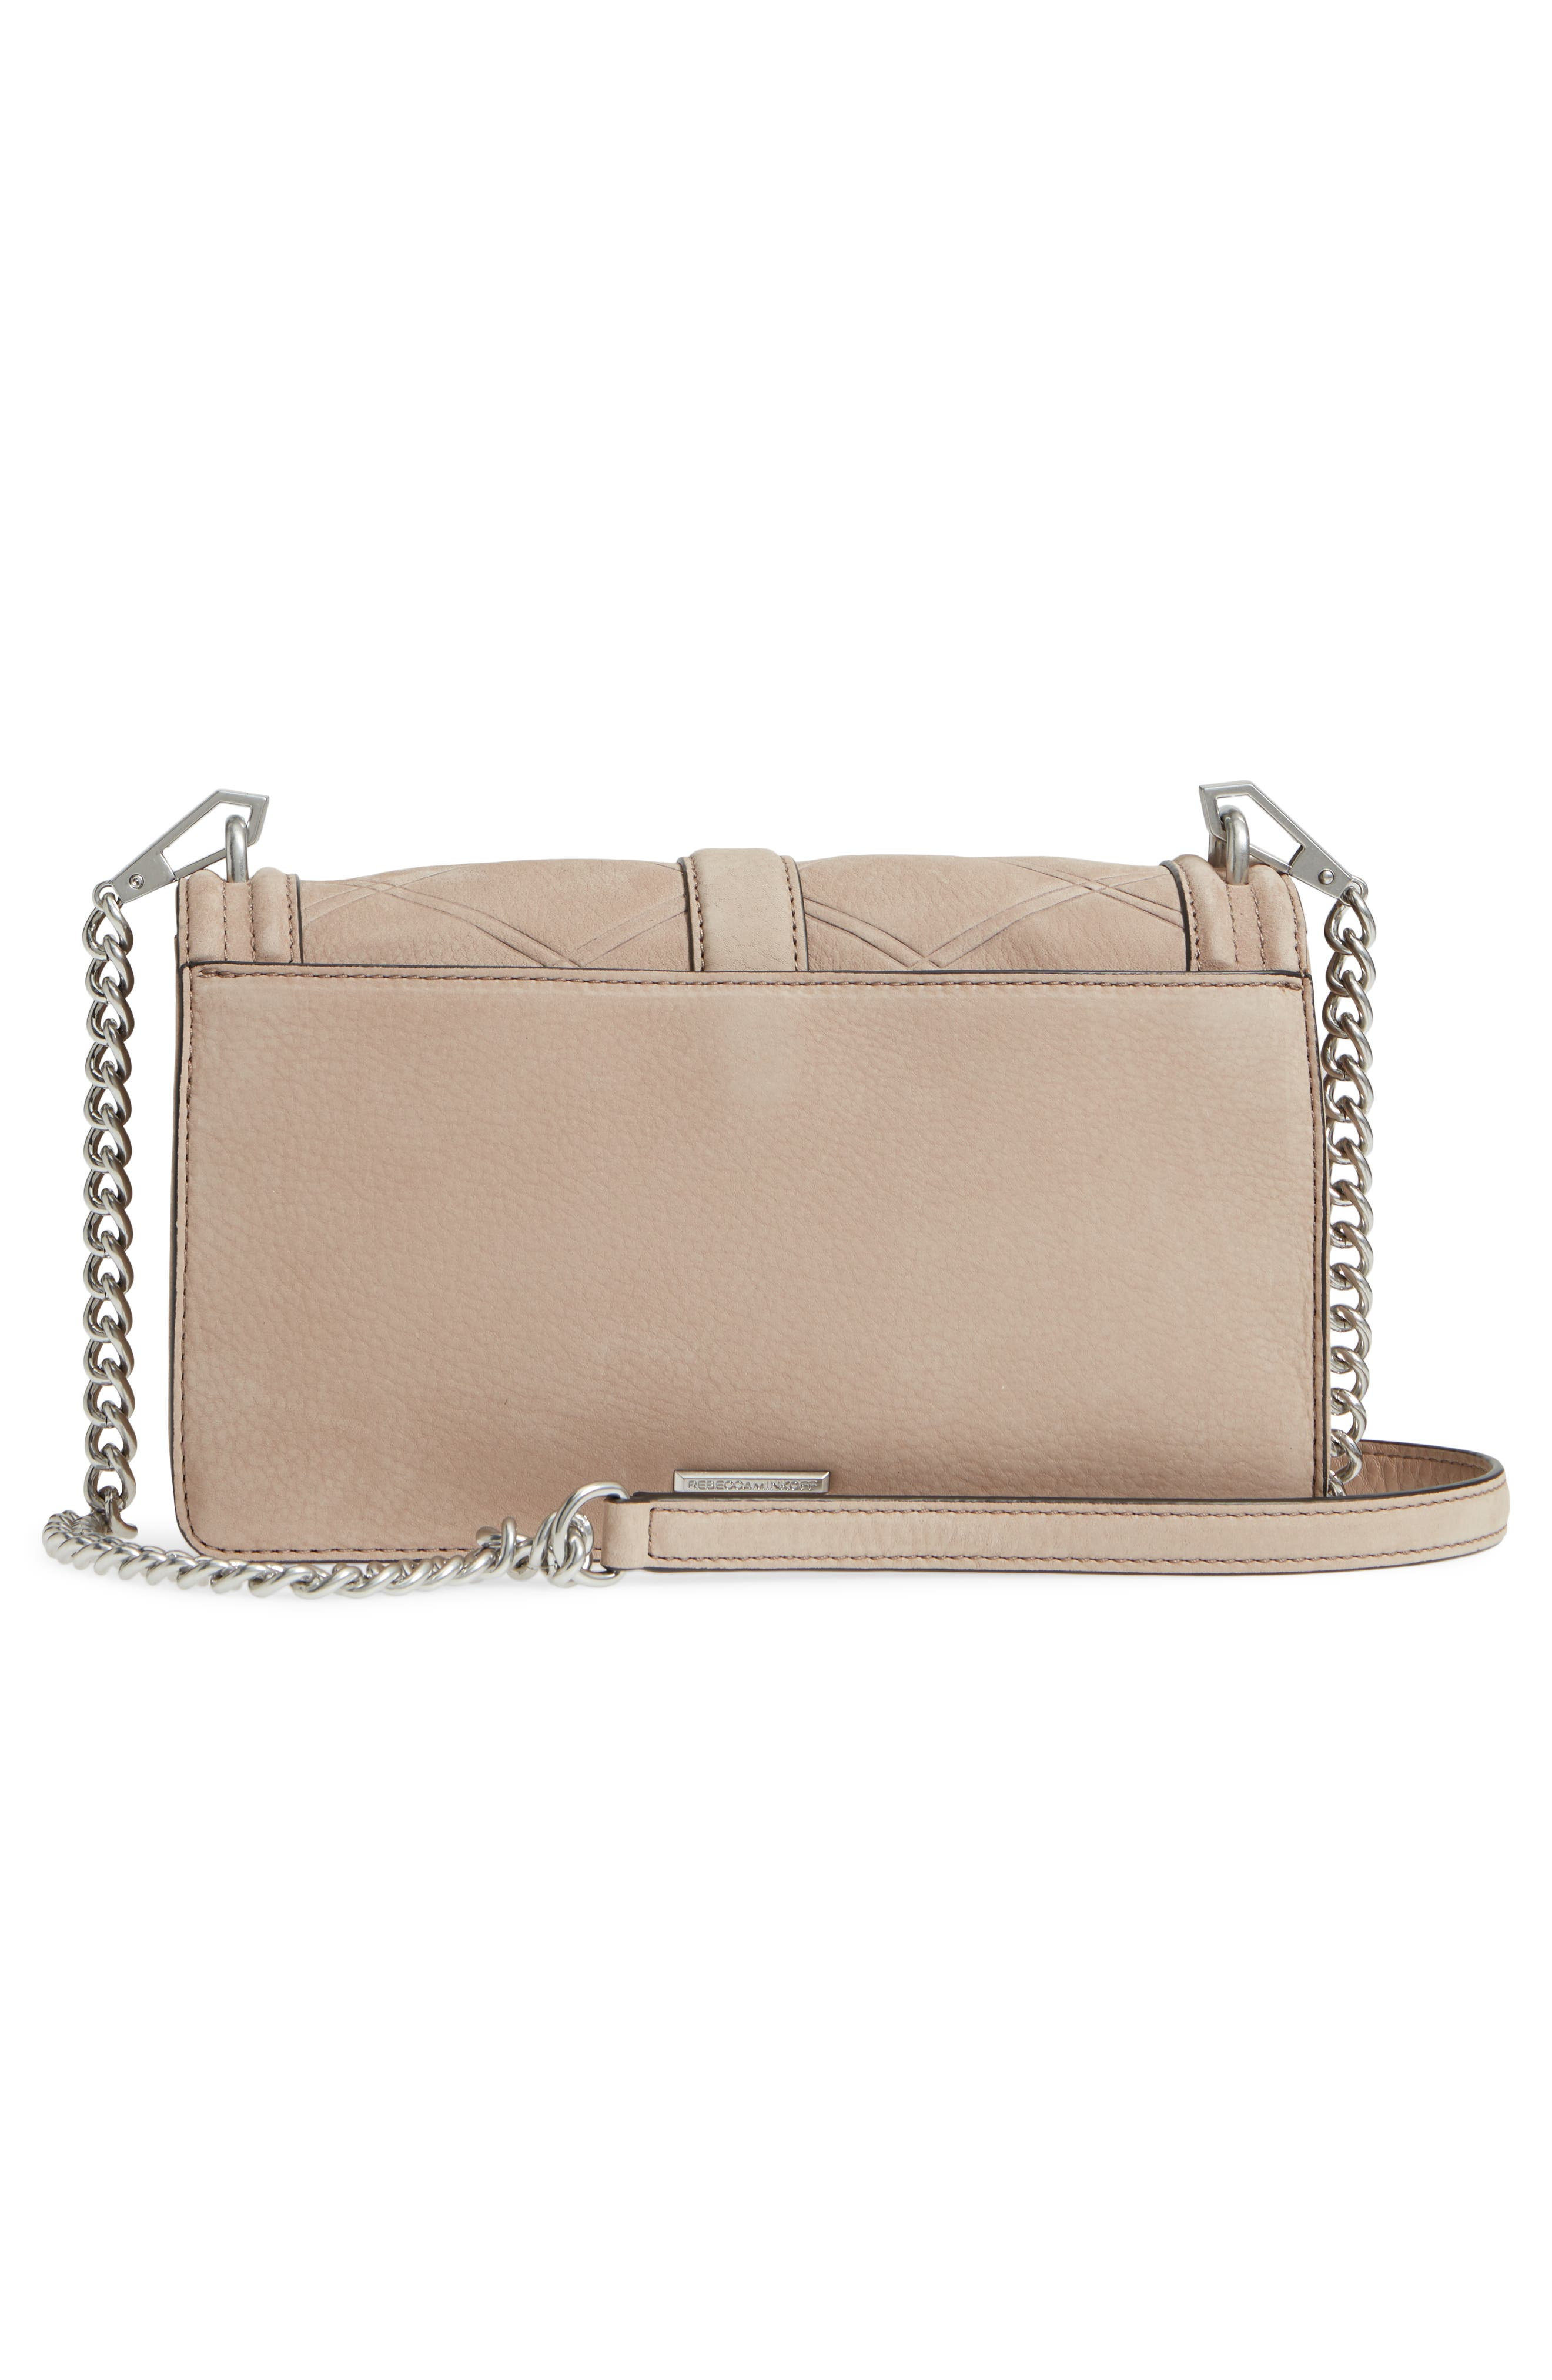 Love Tooled Leather Crossbody Bag,                             Alternate thumbnail 3, color,                             265